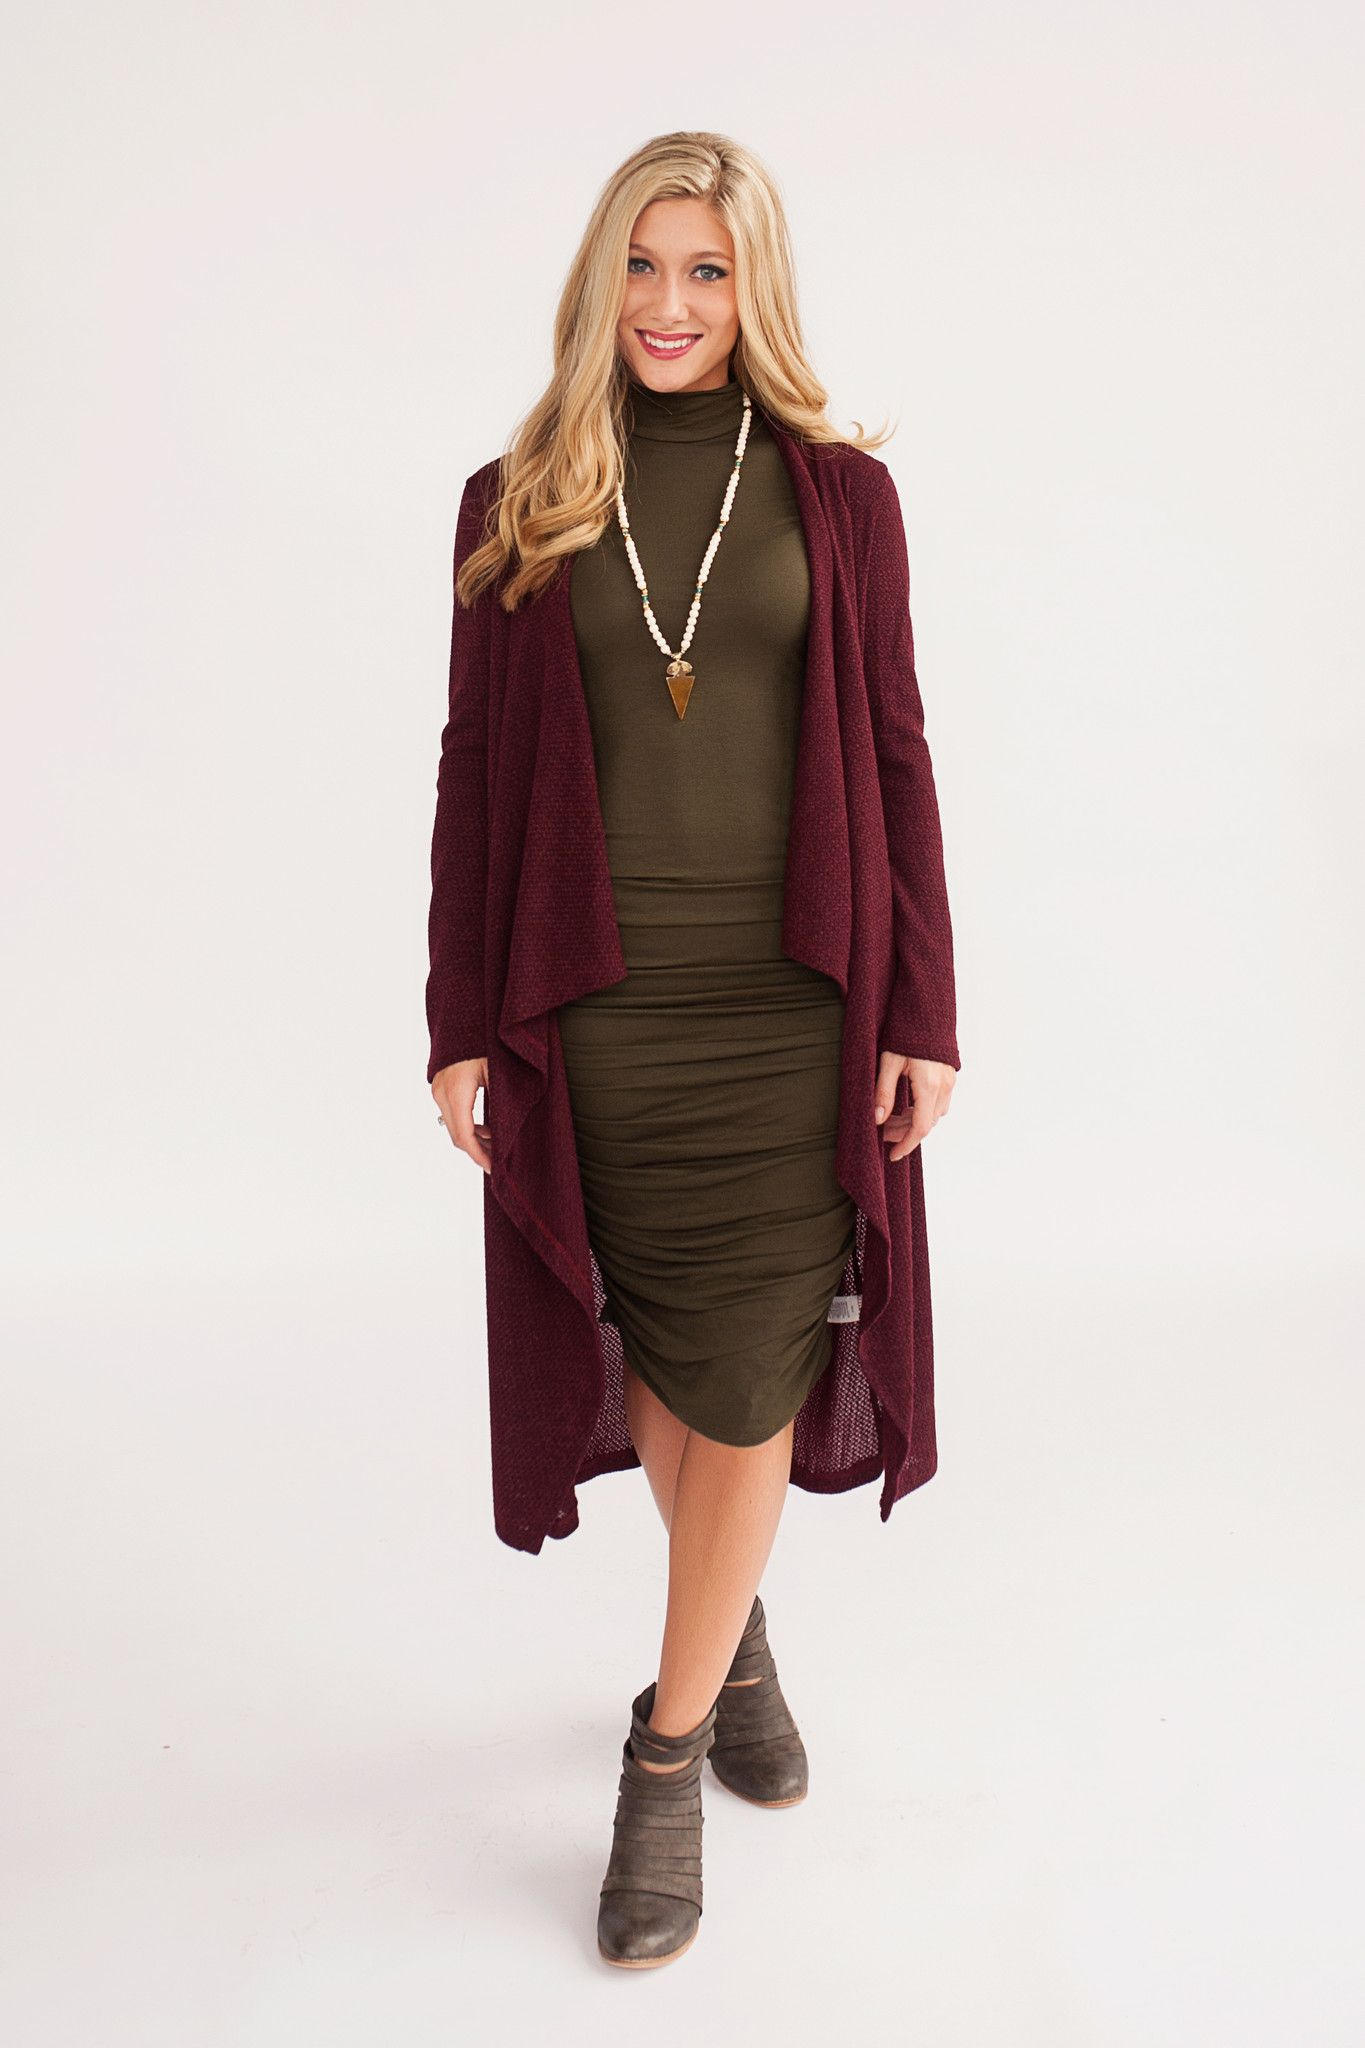 Maroon duster cardigan with long sleeves. | Piper Street Cardigans ...